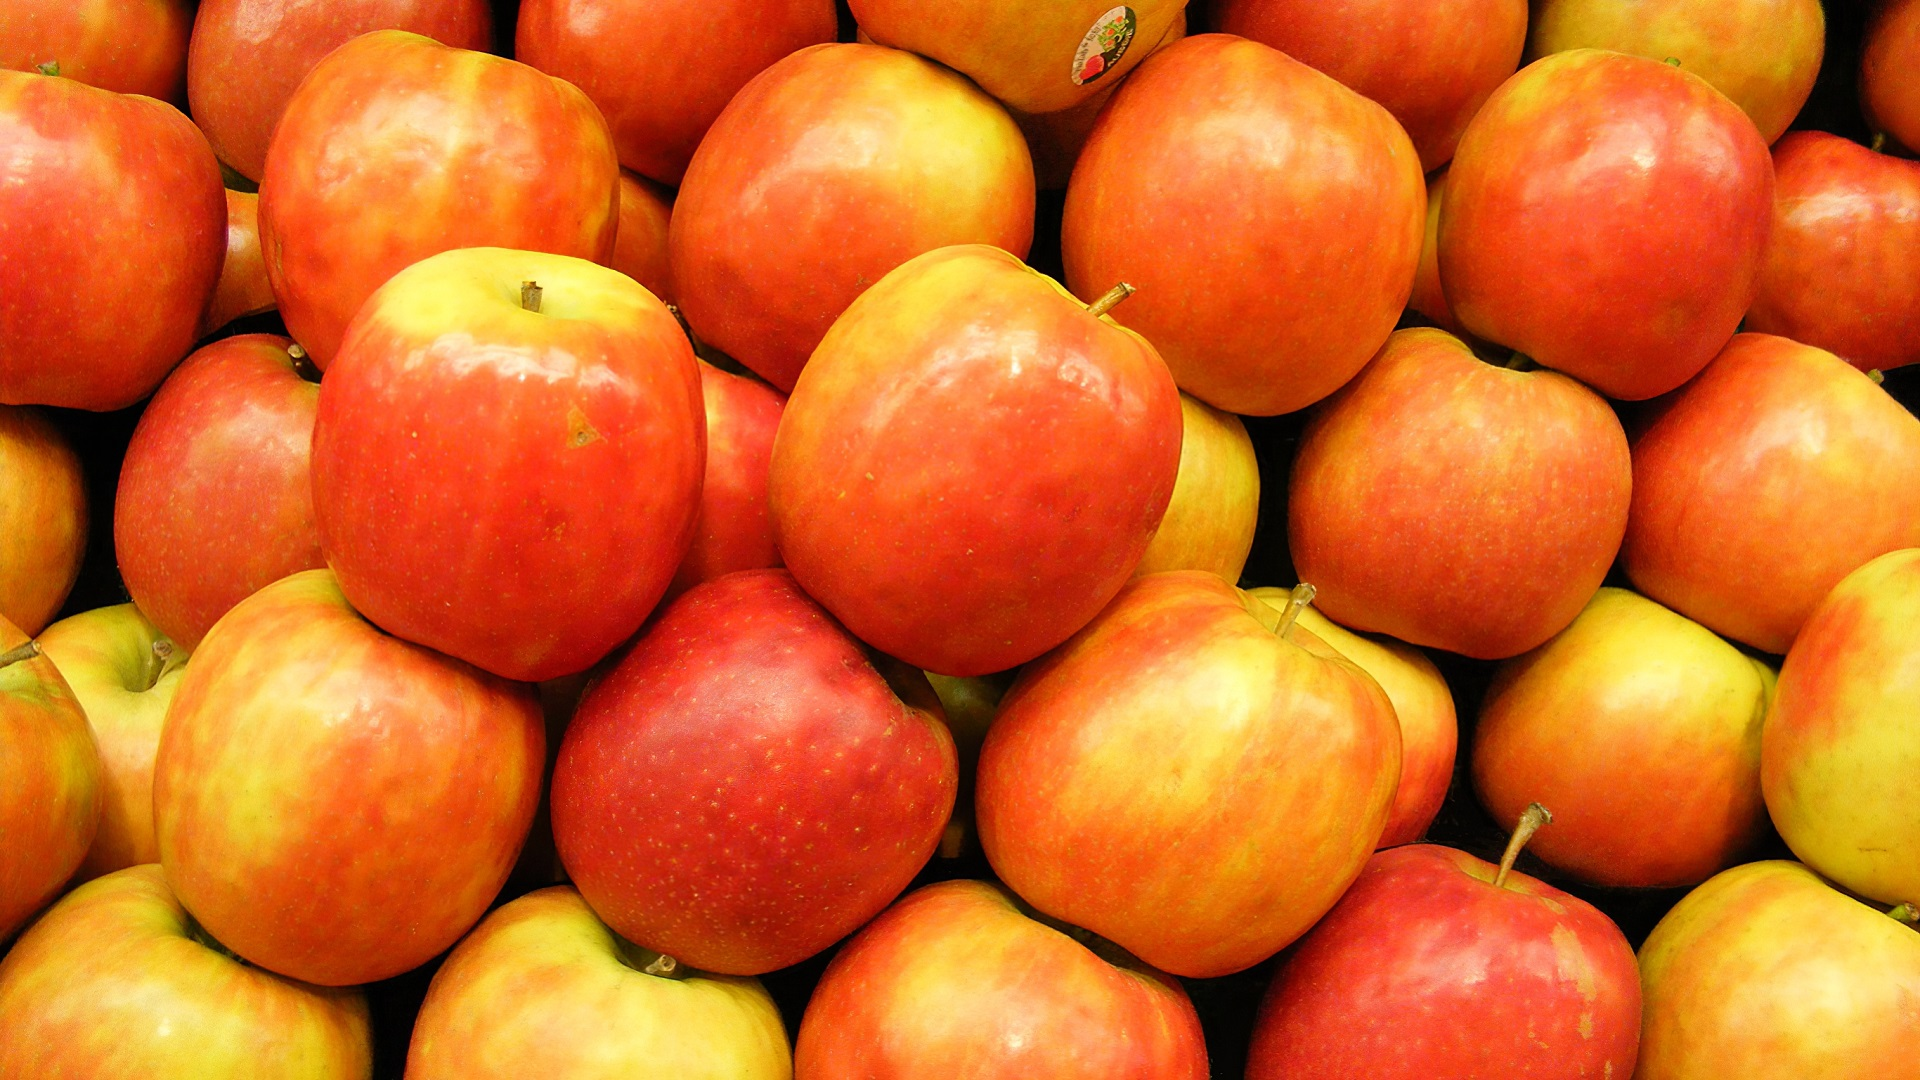 sweet red apples wallpaper and background image | 1366x768 | id